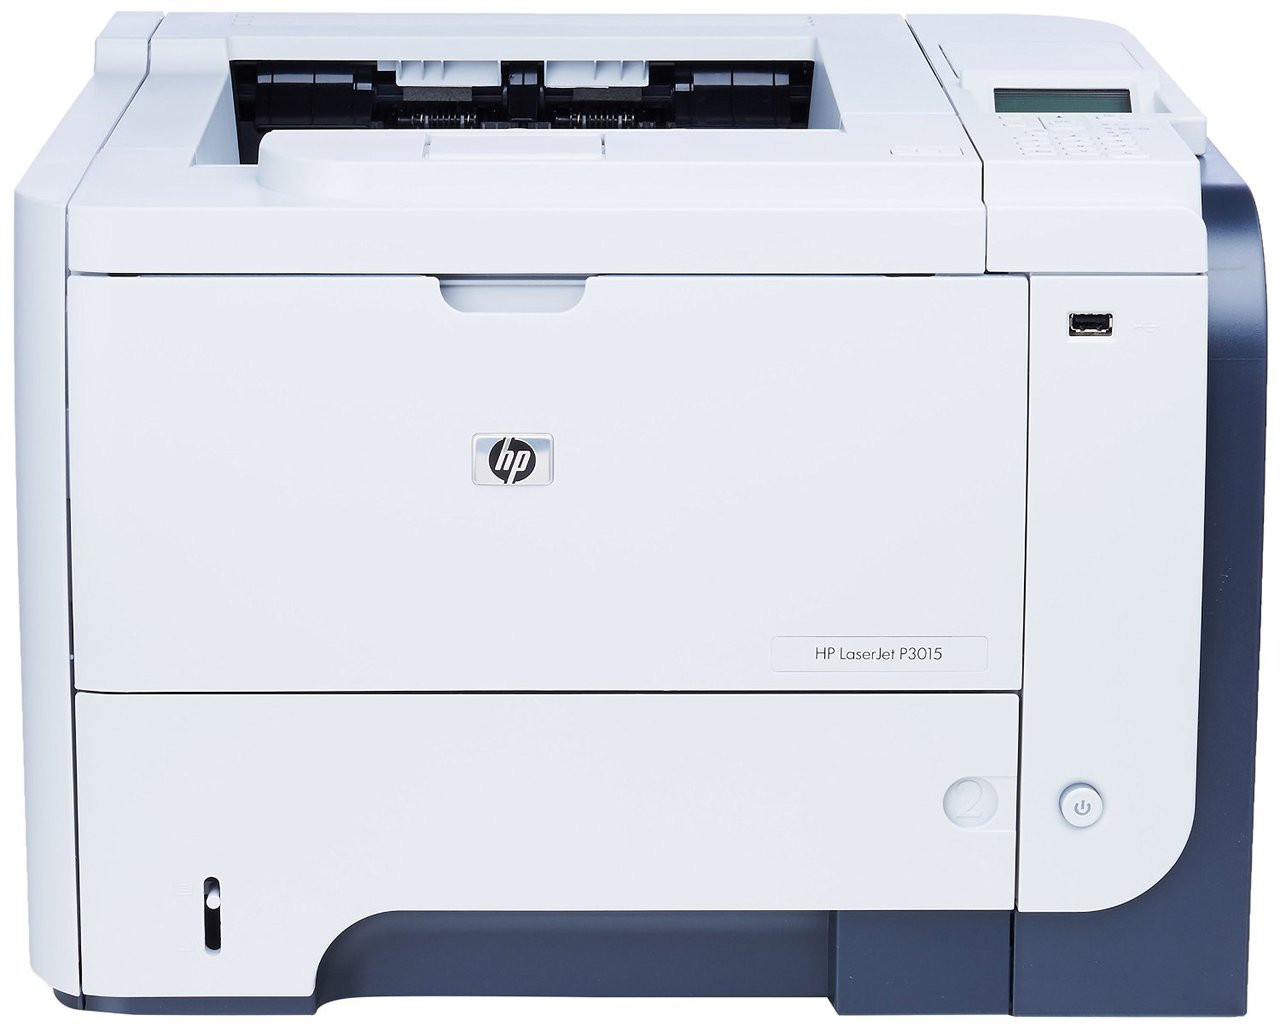 HP LaserJet P3015 - CE525A - HP Laser Printer for sale